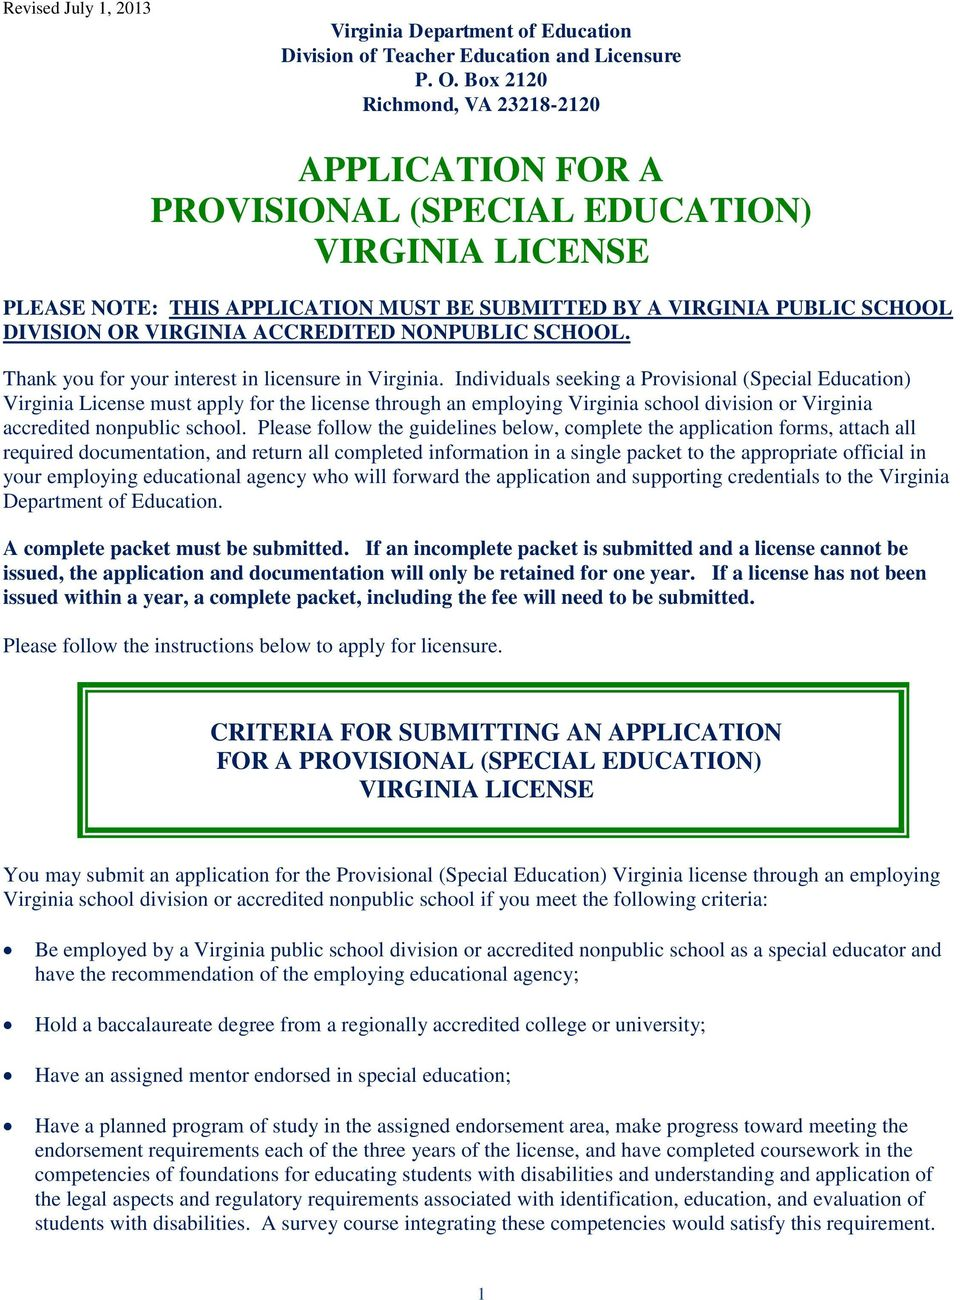 Individuals seeking a Provisional (Special Education) Virginia License must apply for the license through an employing Virginia school division or Virginia accredited nonpublic school.